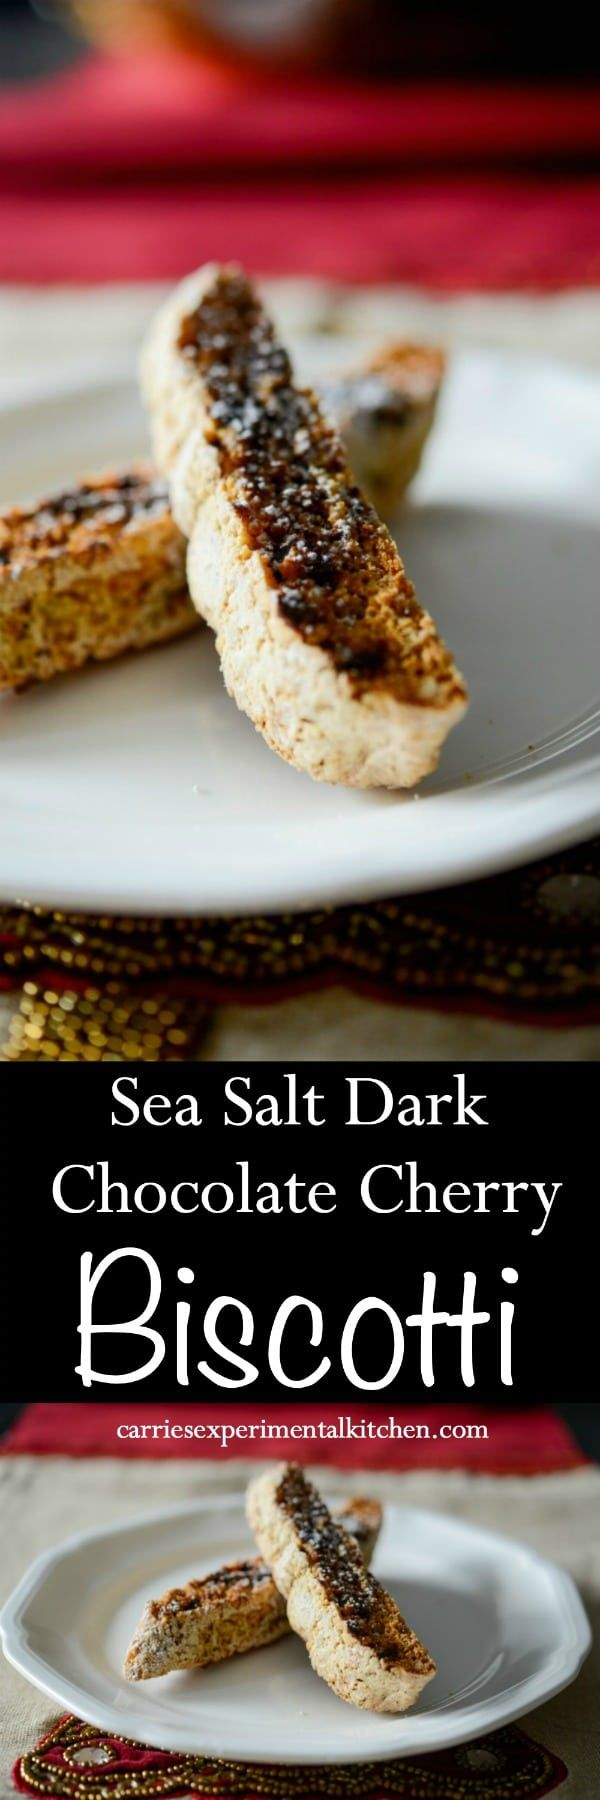 Biscotti is an Italian cookie that's perfect for dunking and this one made with sea salt dark chocolate and dried chopped cherries is going to be your new favorite.#biscotti #cookie #dessert #chocolate #cherry via @CarriesExpKtchn